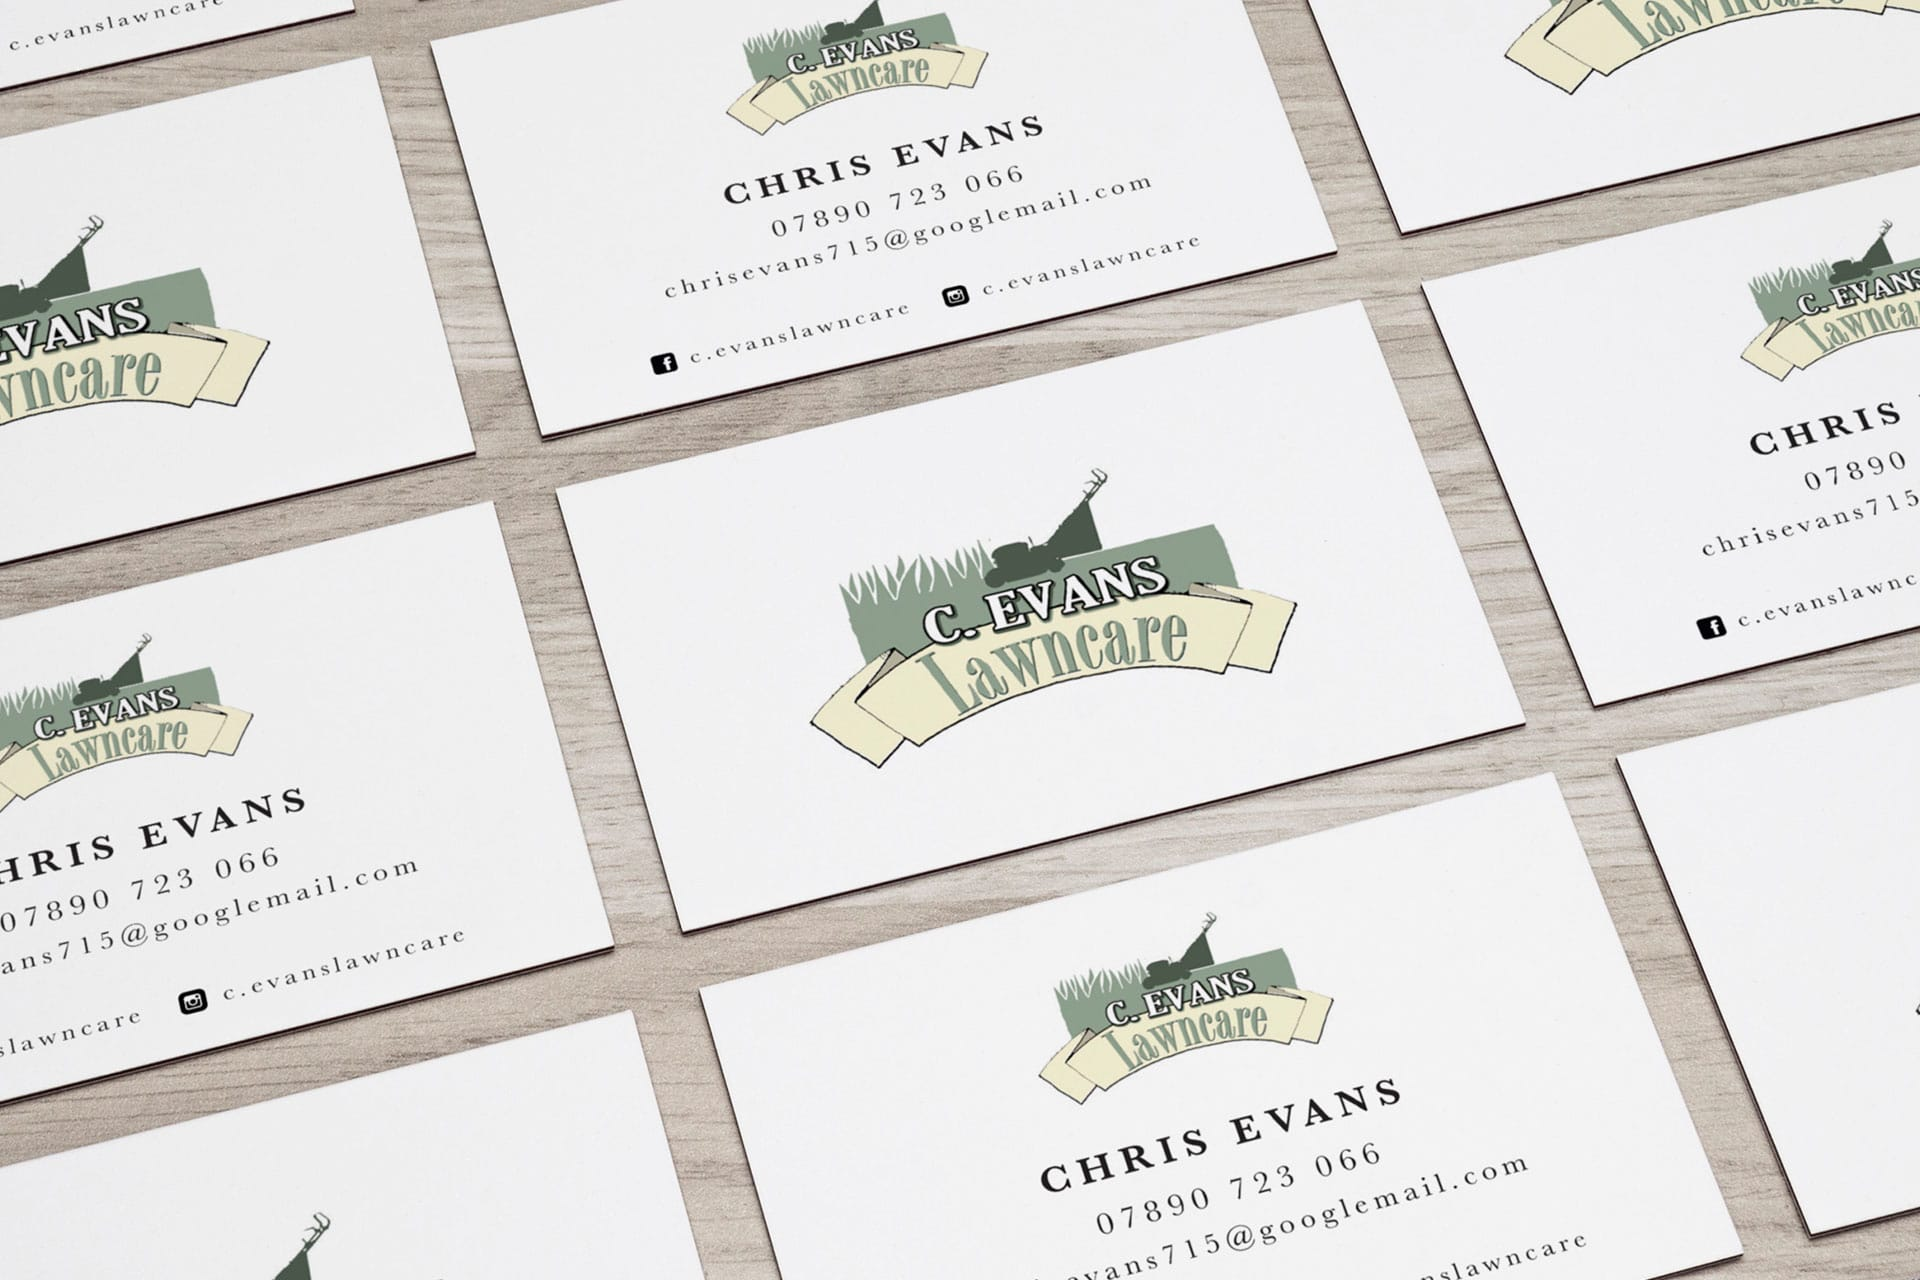 C.Evans Lawncare Business Cards